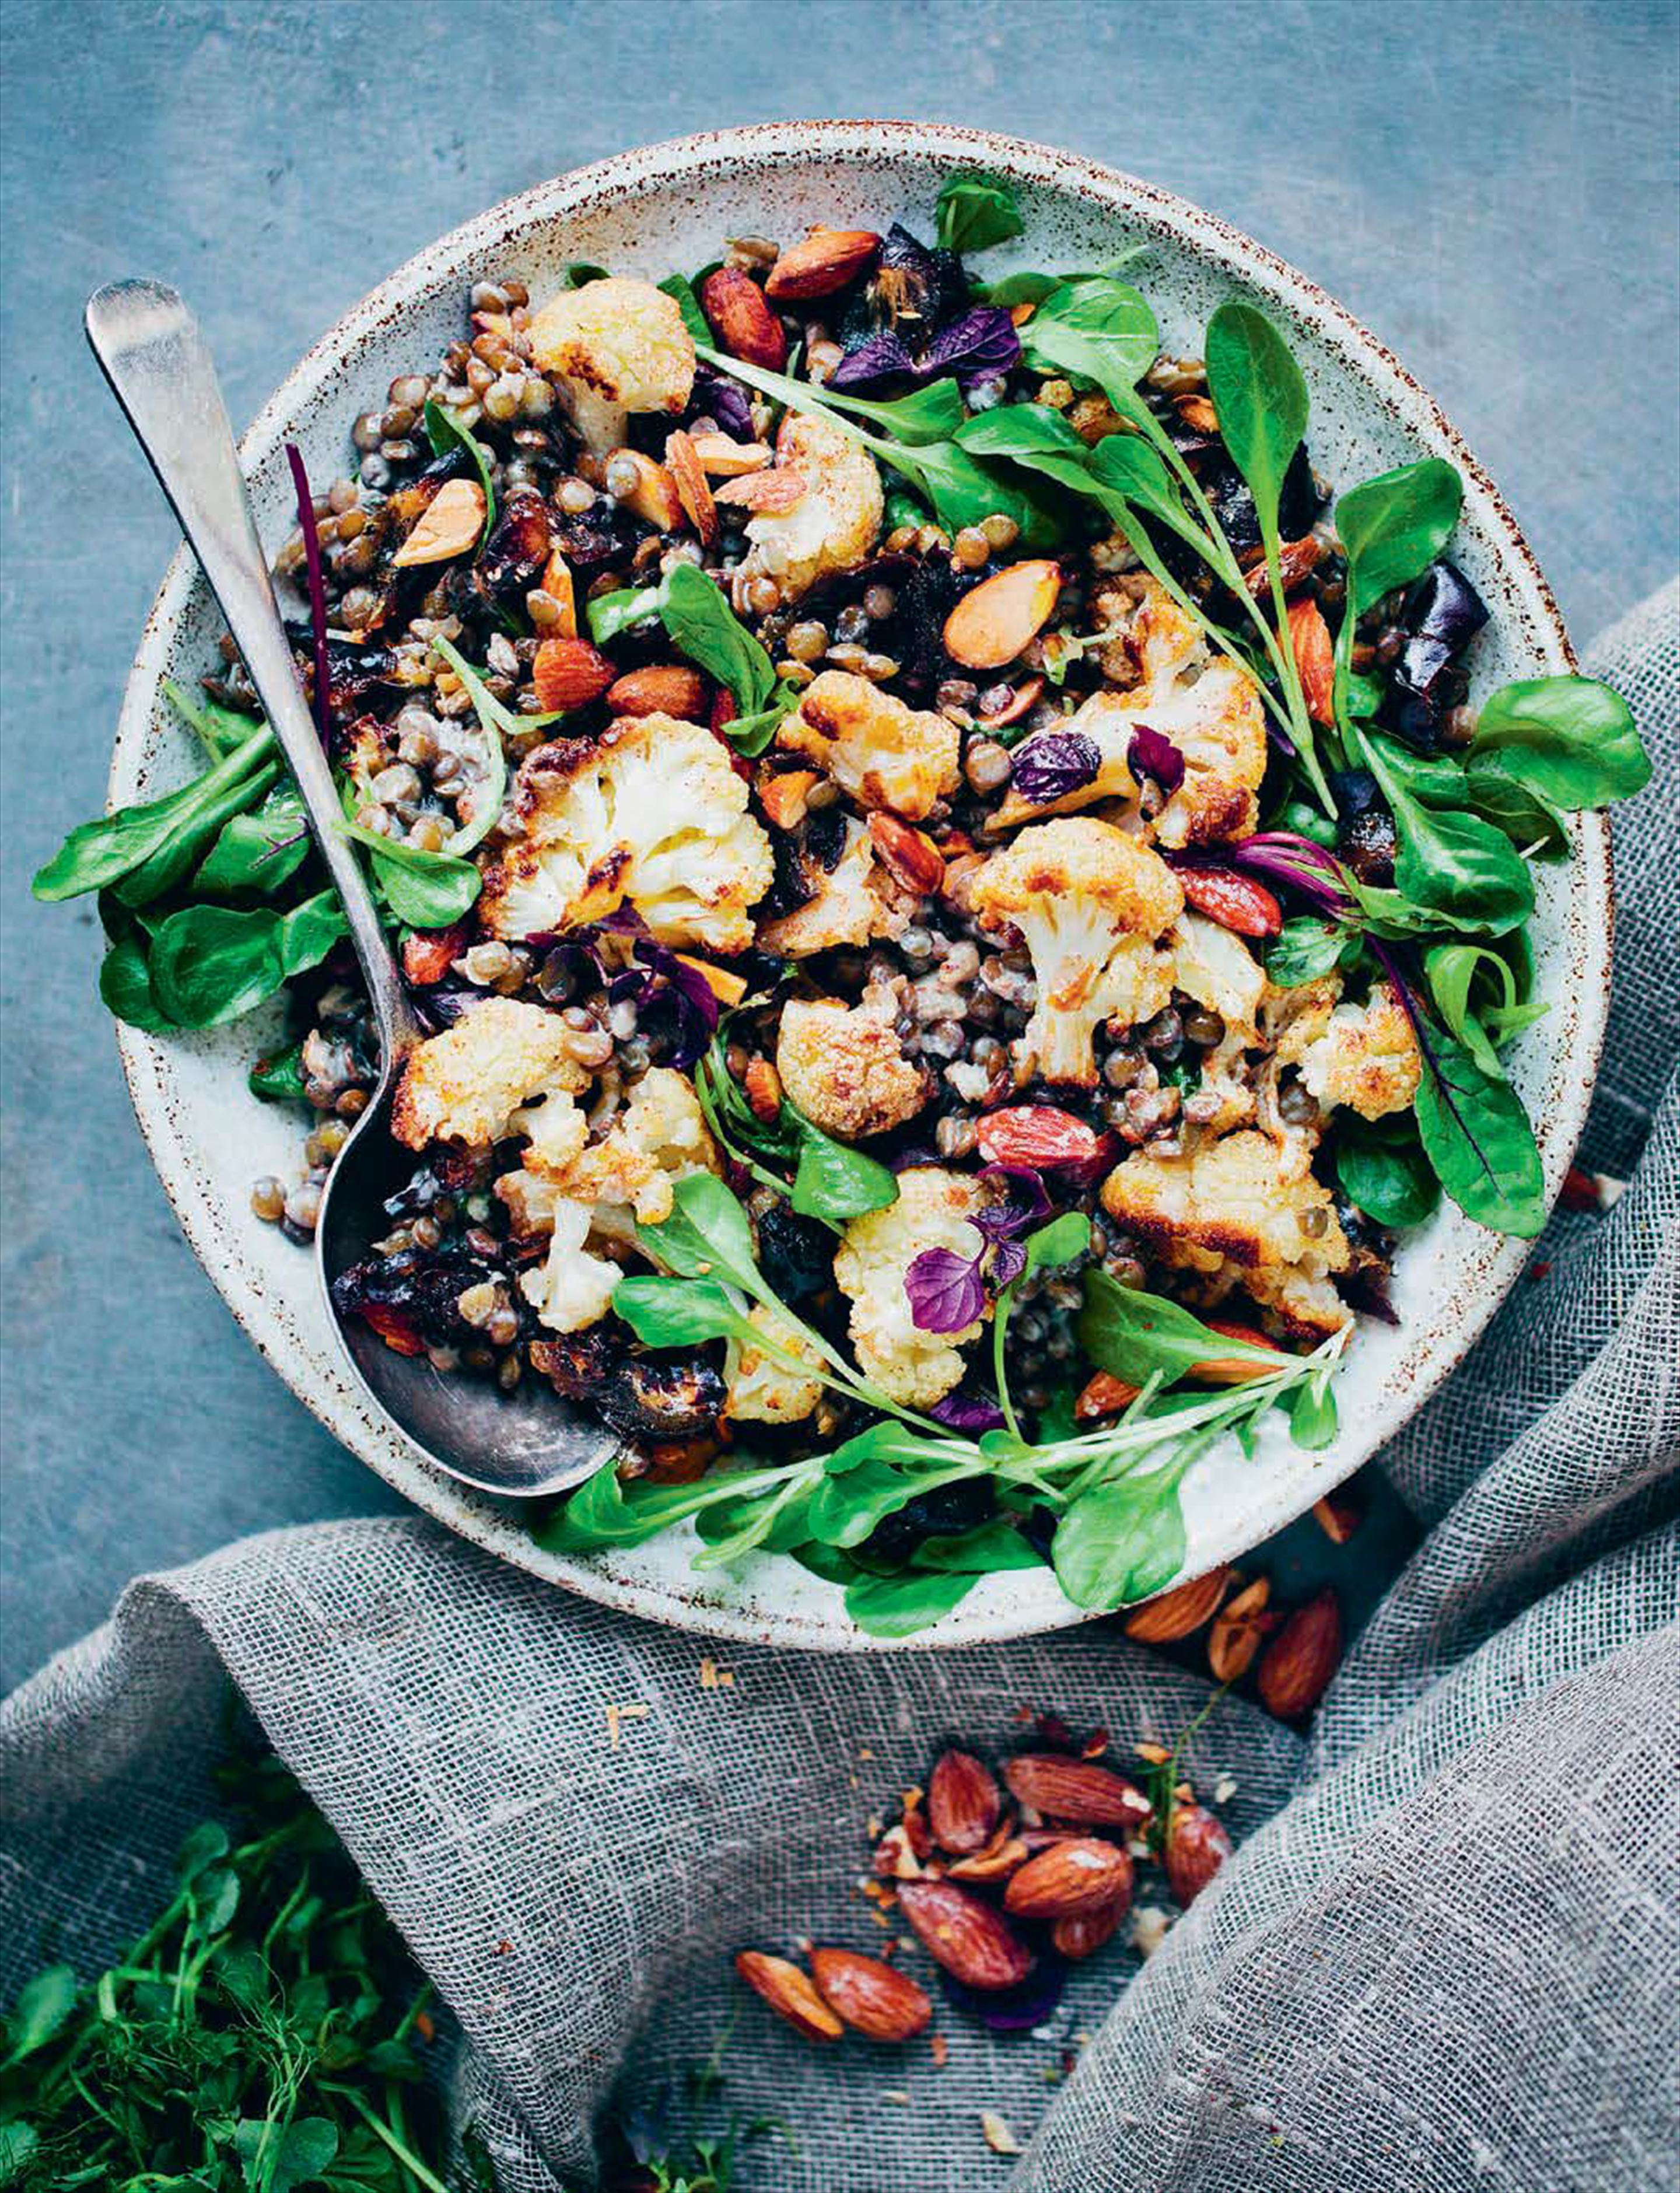 Middle-Eastern cauliflower and lentil salad